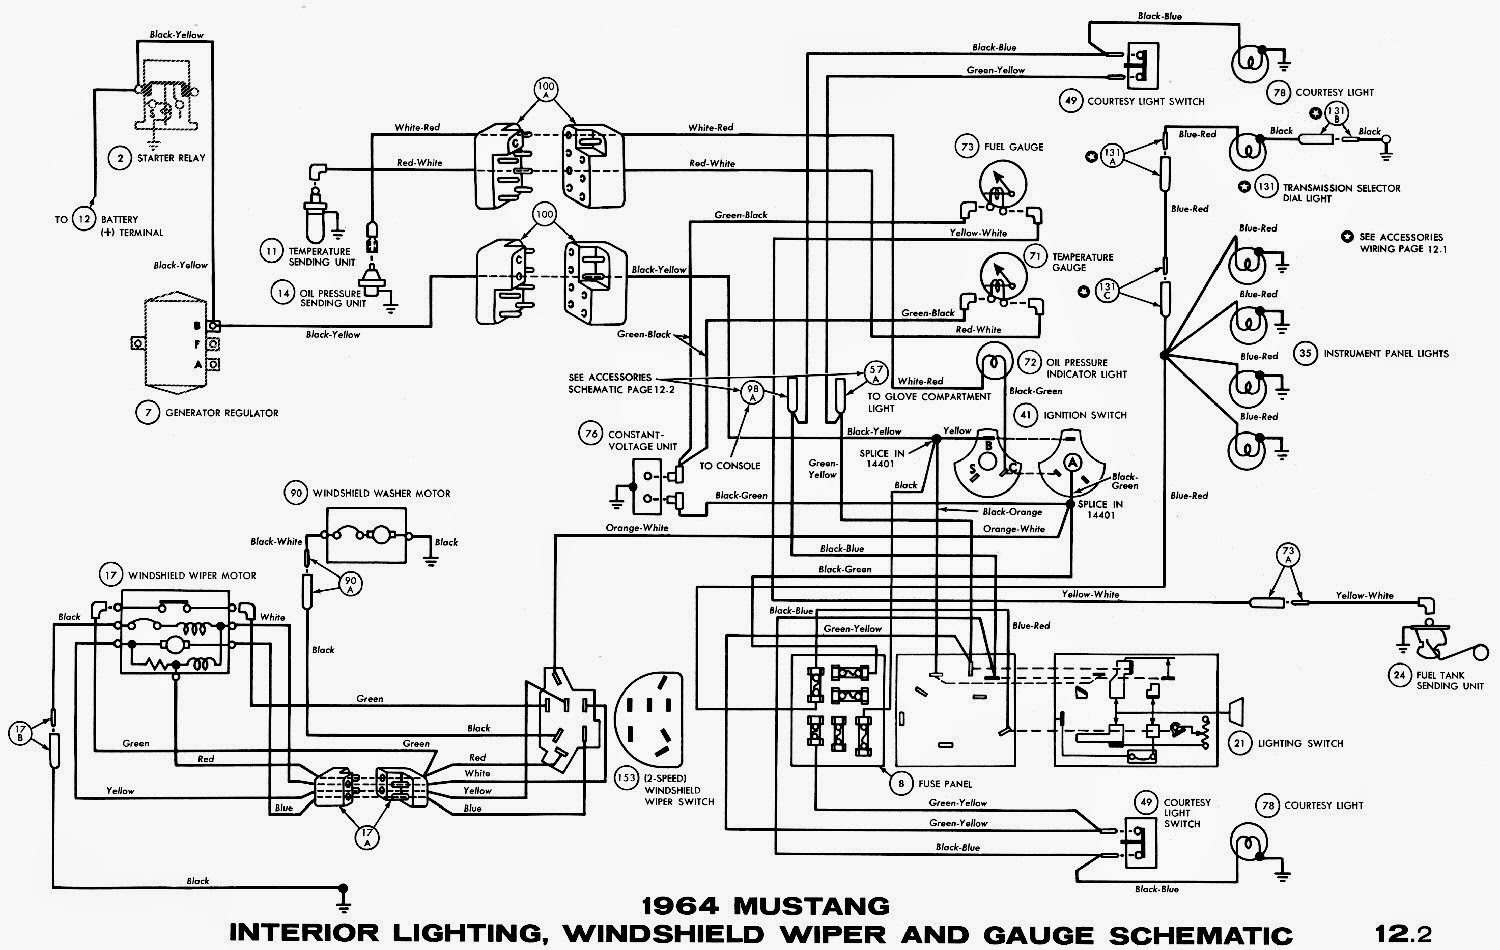 1969 mustang under dash wiring diagram centrifugal pump mechanical seal 1964 diagrams schematic